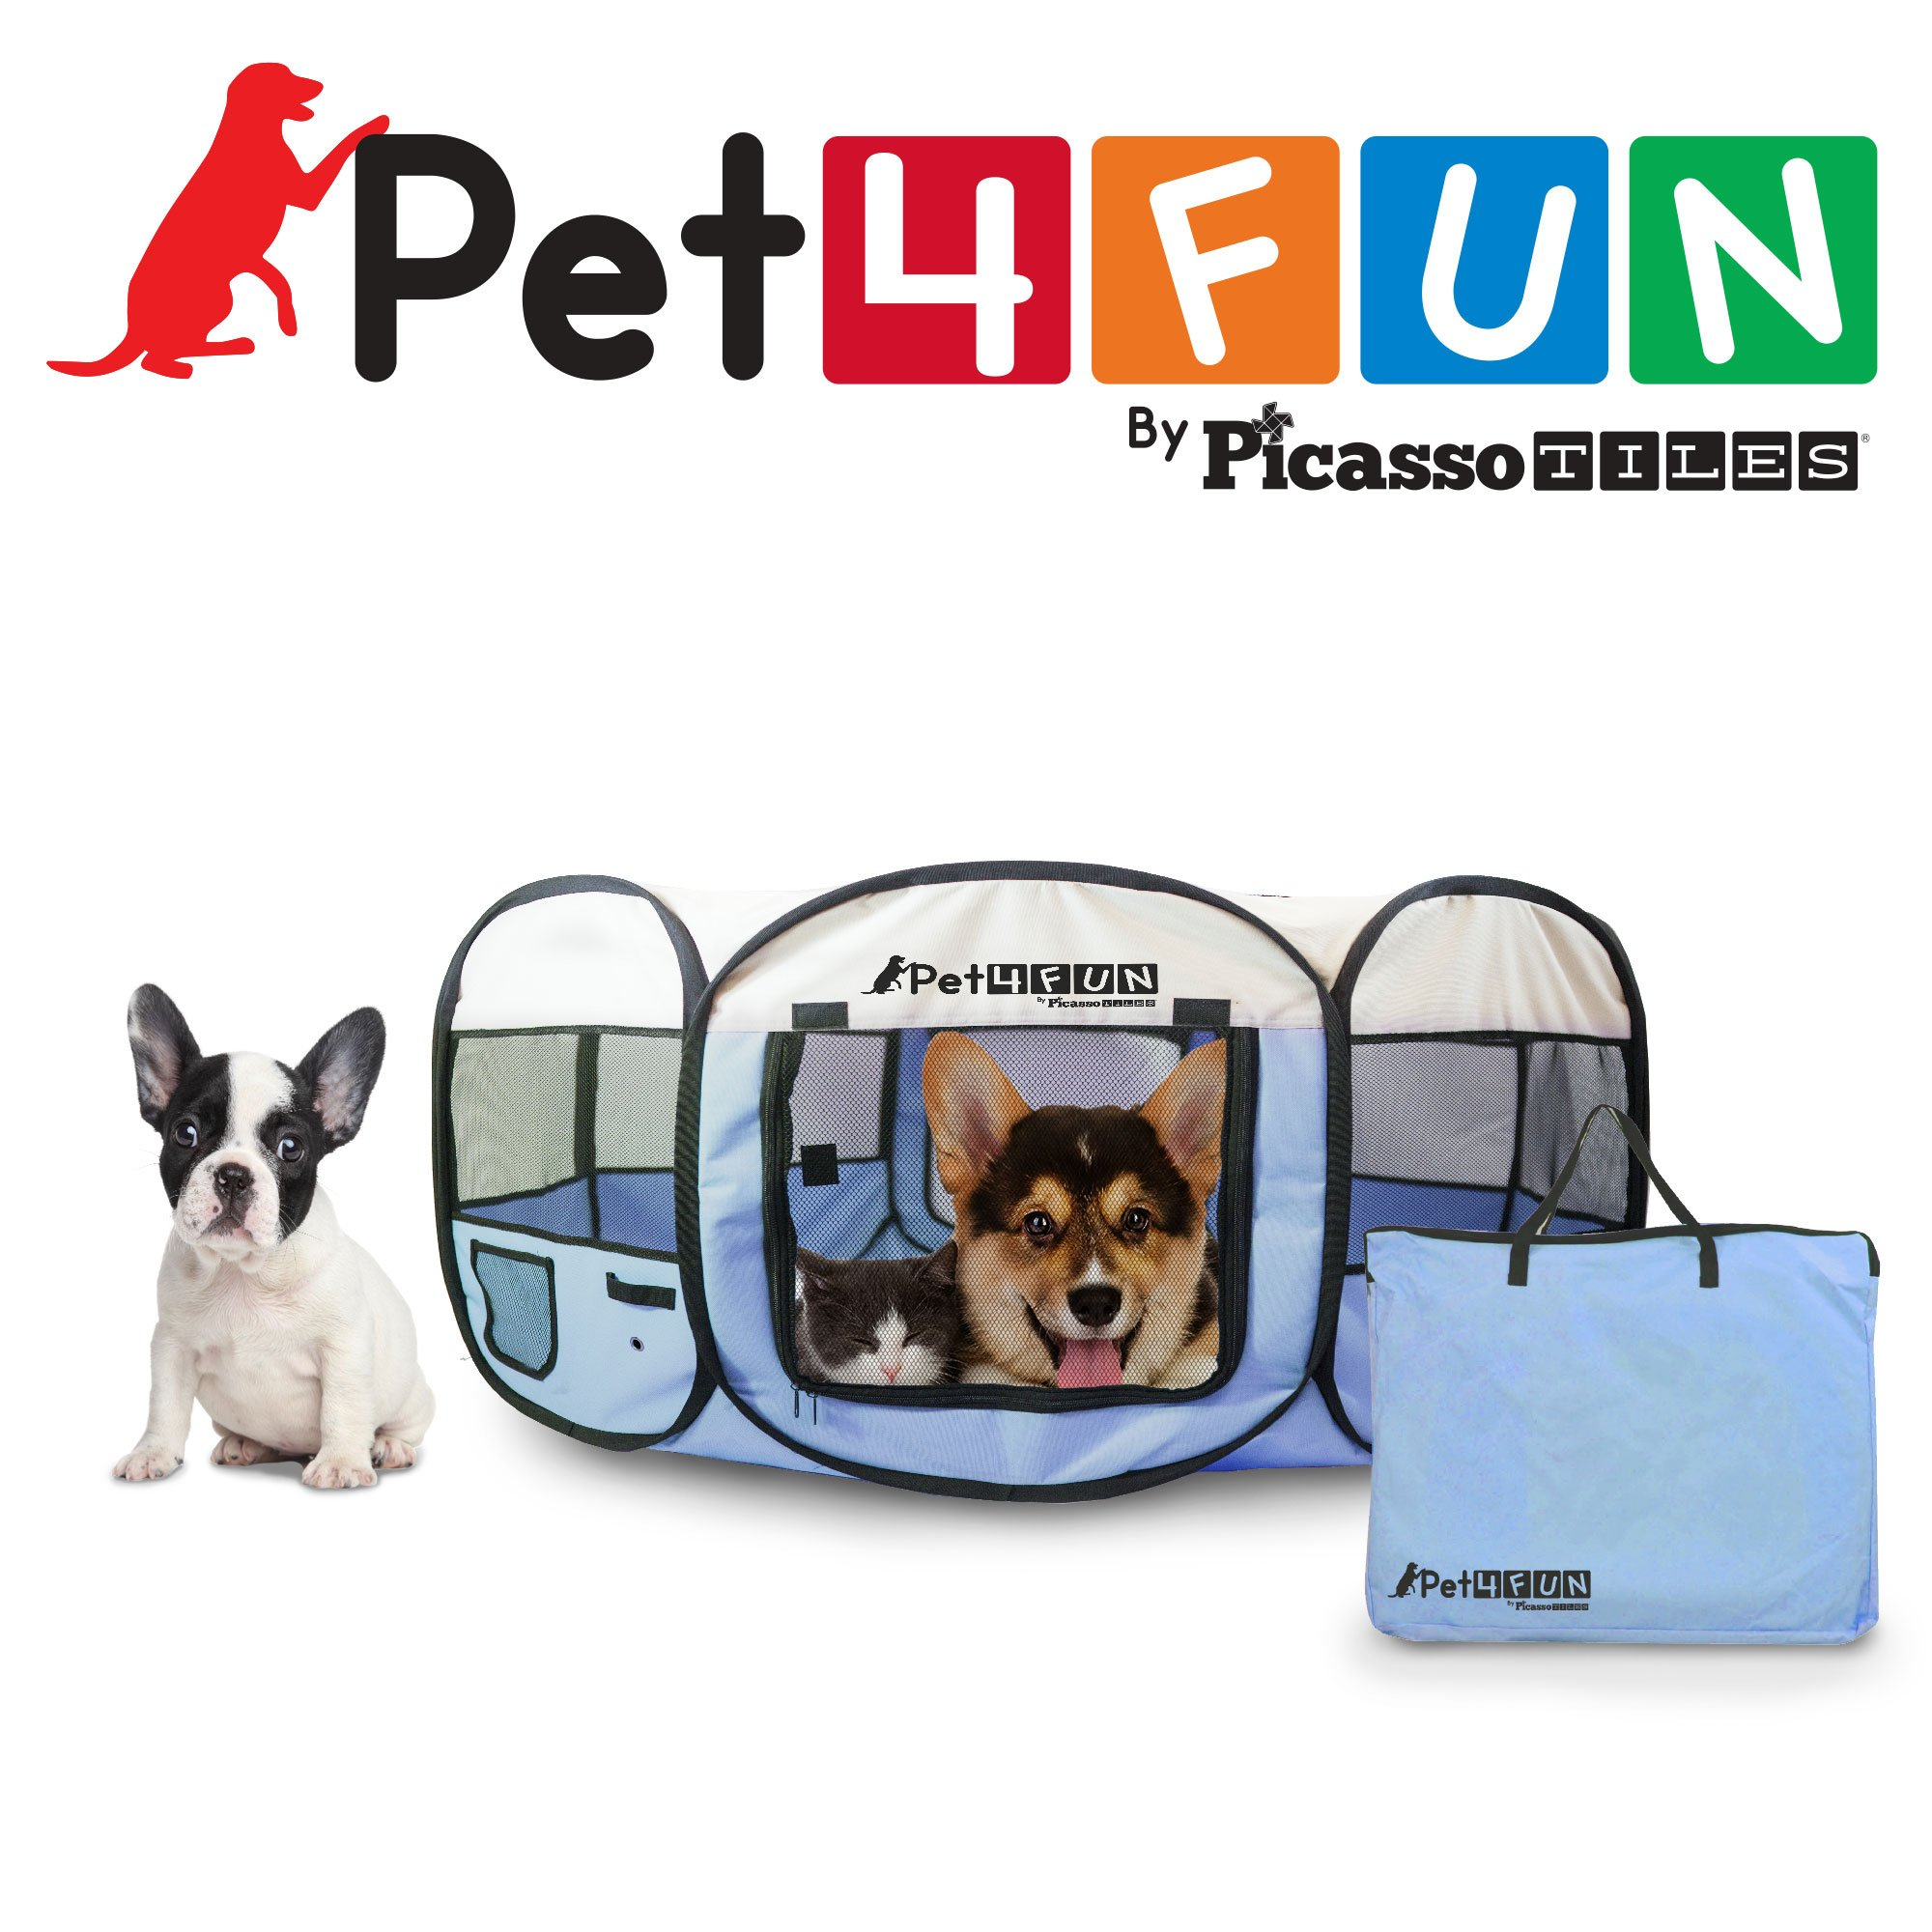 PET4FUN PN935 35'' Portable Pet Puppy Dog Cat Animal Playpen Yard Crates Kennel w/ Premium 600D Oxford Cloth, Tool-Free Setup, Carry Bag, Removable Security Mesh Cover/Shade, 2 Storage Pockets(Blue)